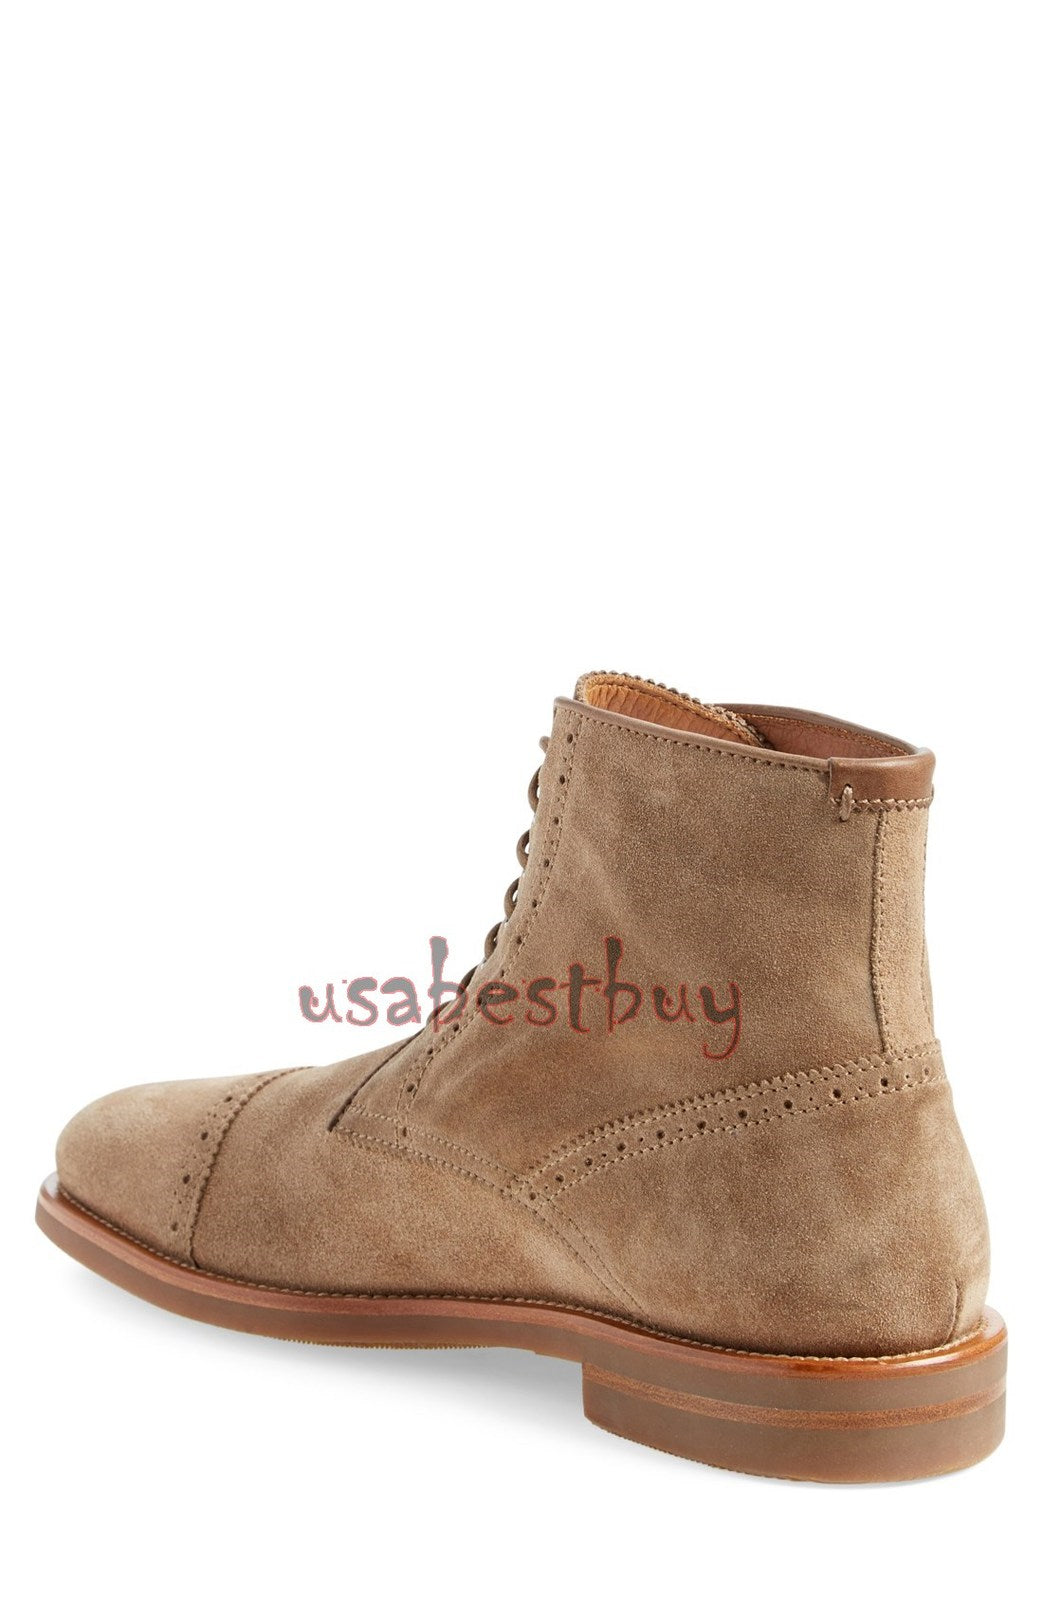 New Handmade Oxford Superb Style Brogue Suede Leather Boots, Men leather boots